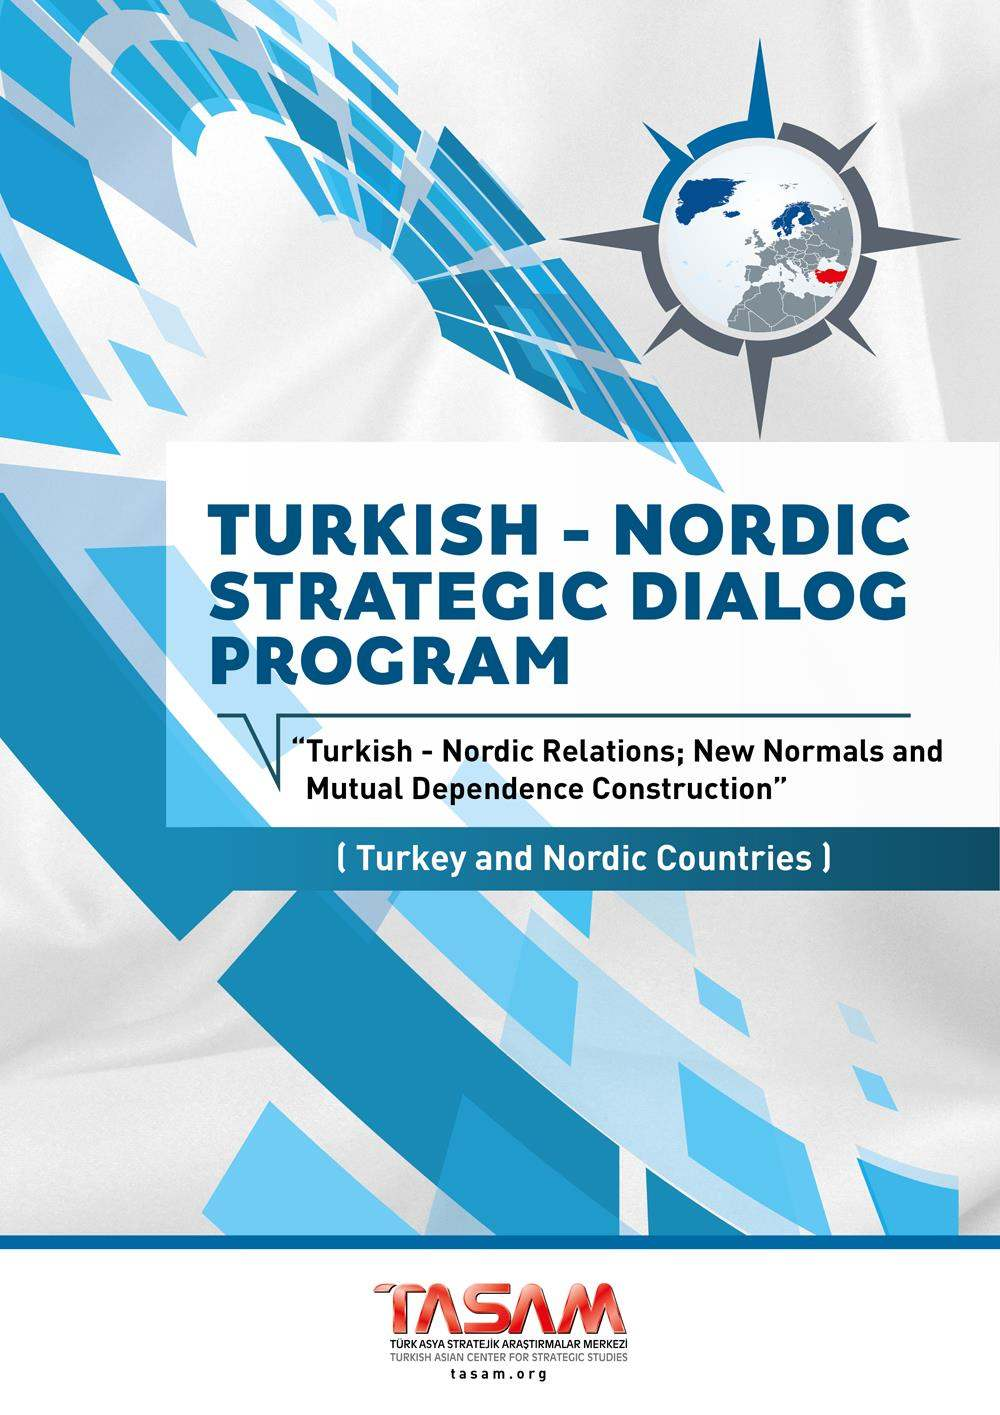 Turkish - Nordic Strategic Dialogue Program